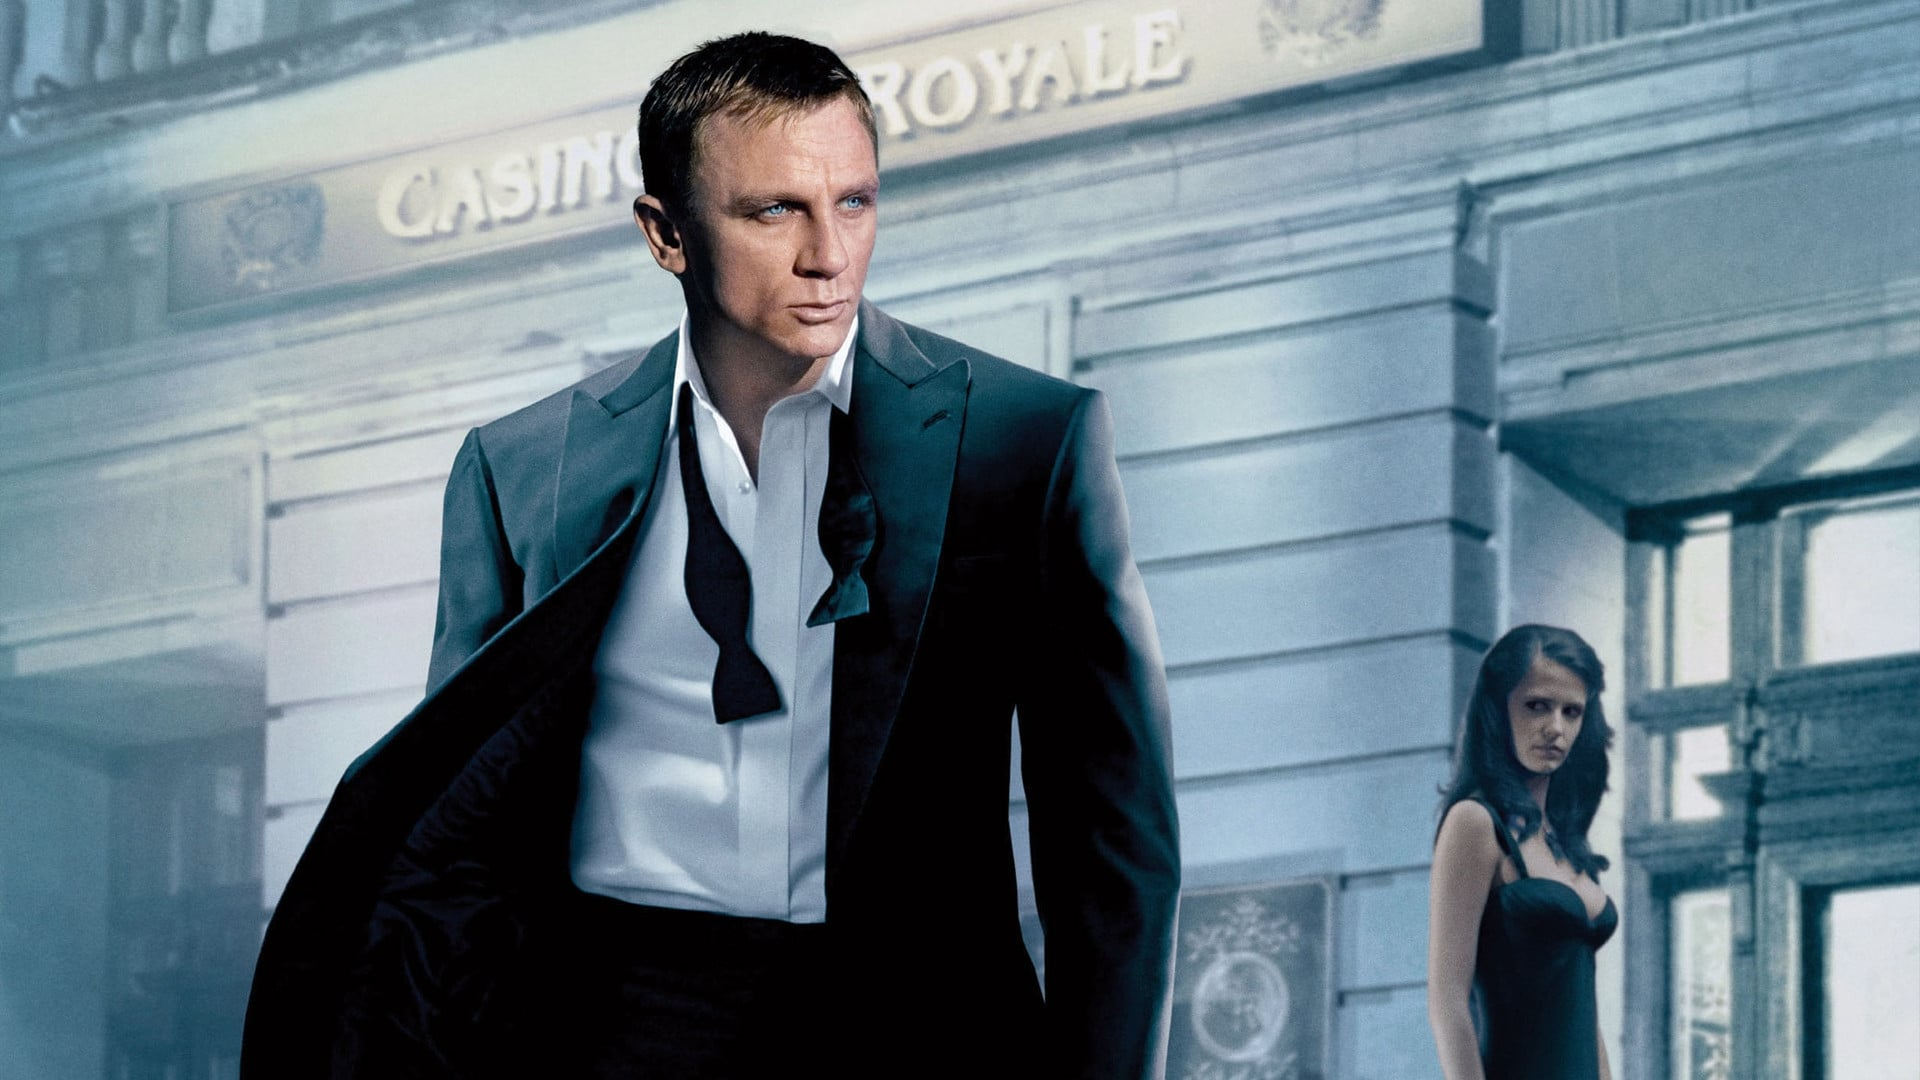 Casino royale 720p french download free hoyle casino games full version